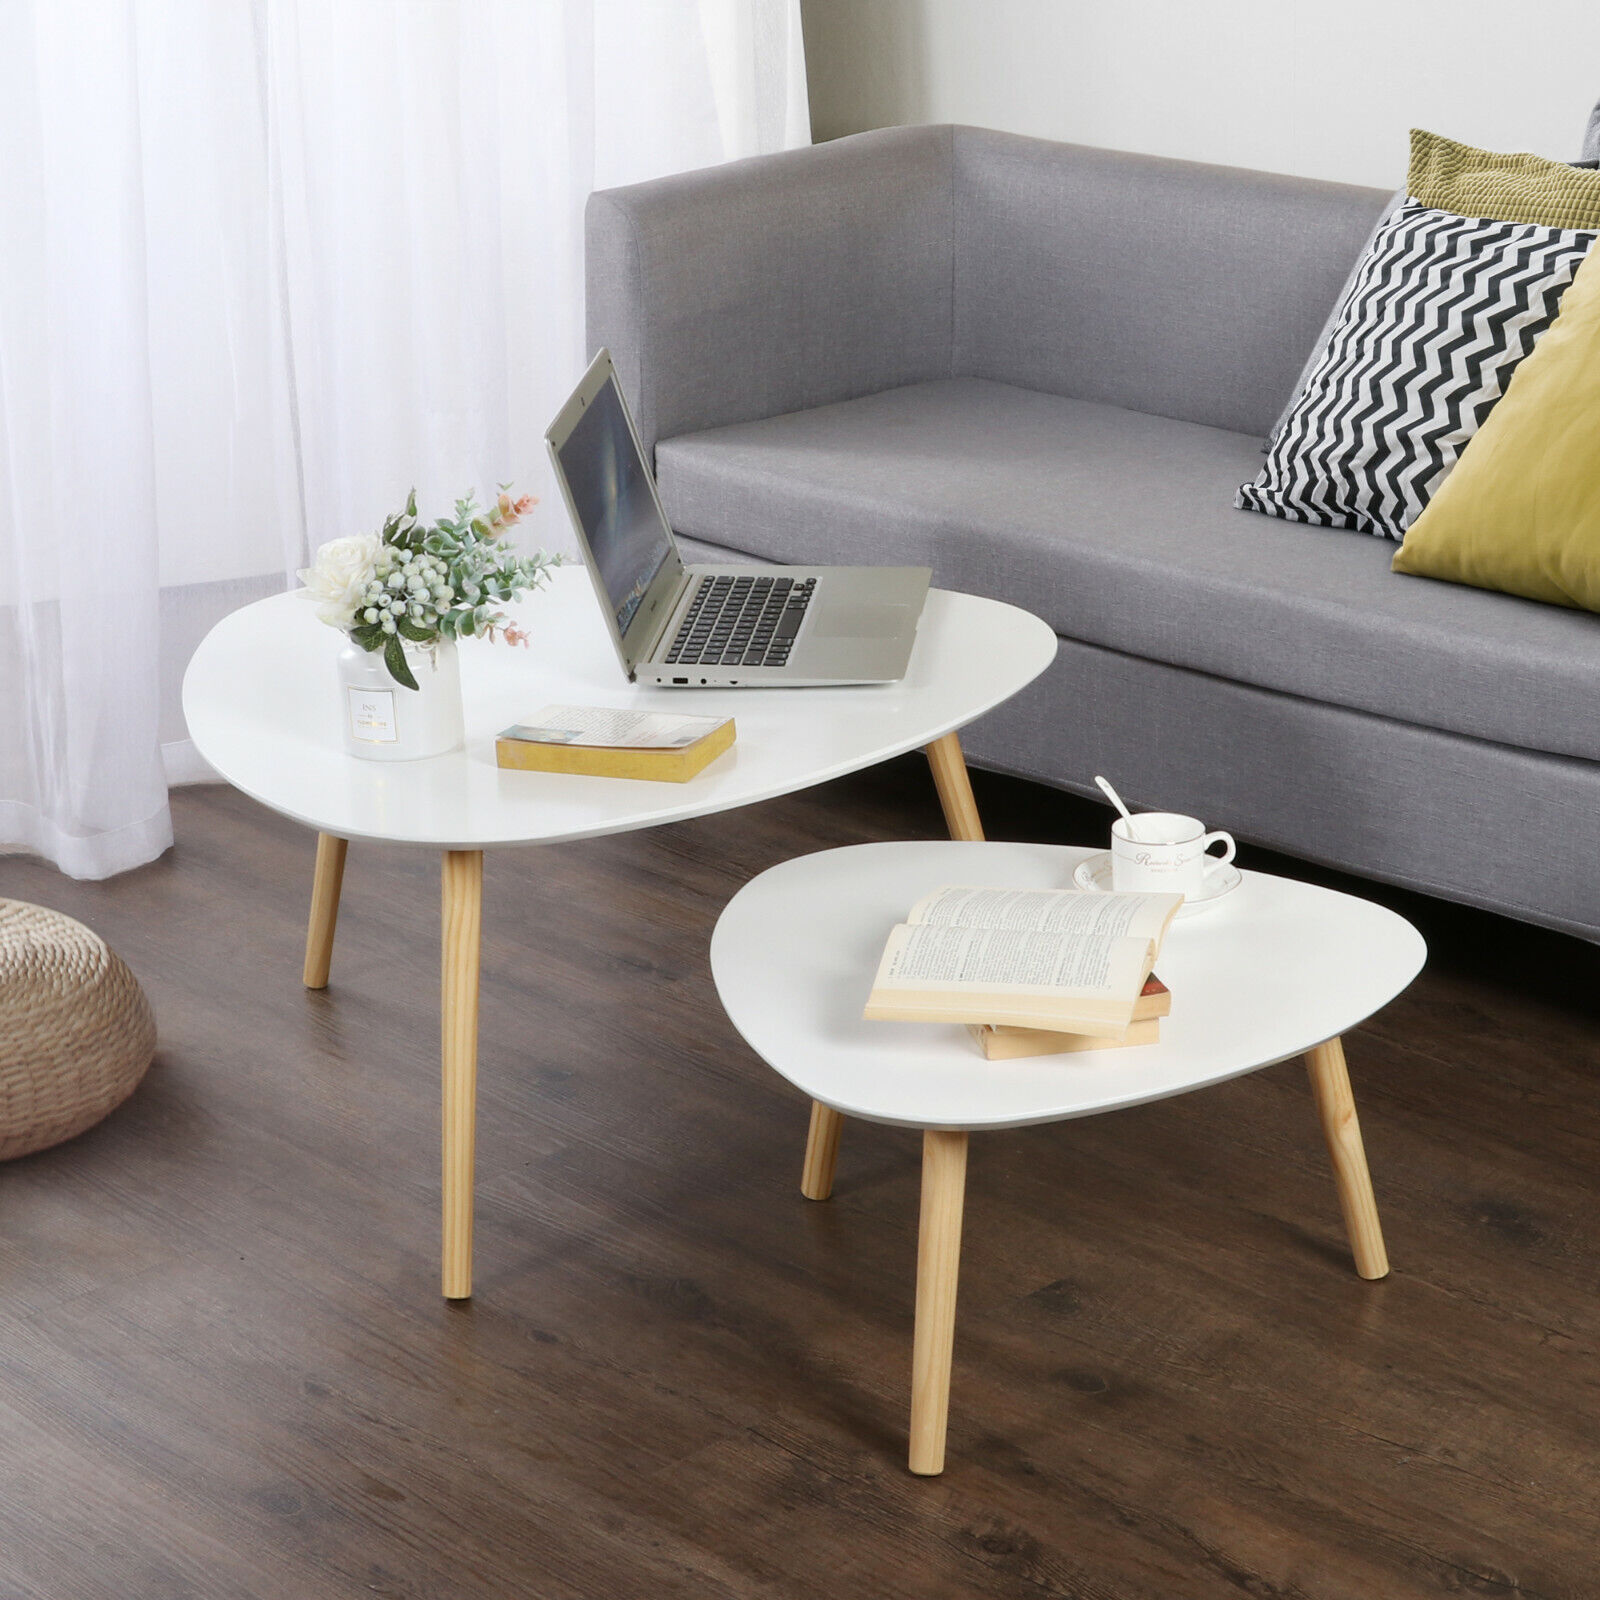 - Modern Nest Of Tables White Retro Furniture Side Set Of 2 Coffee